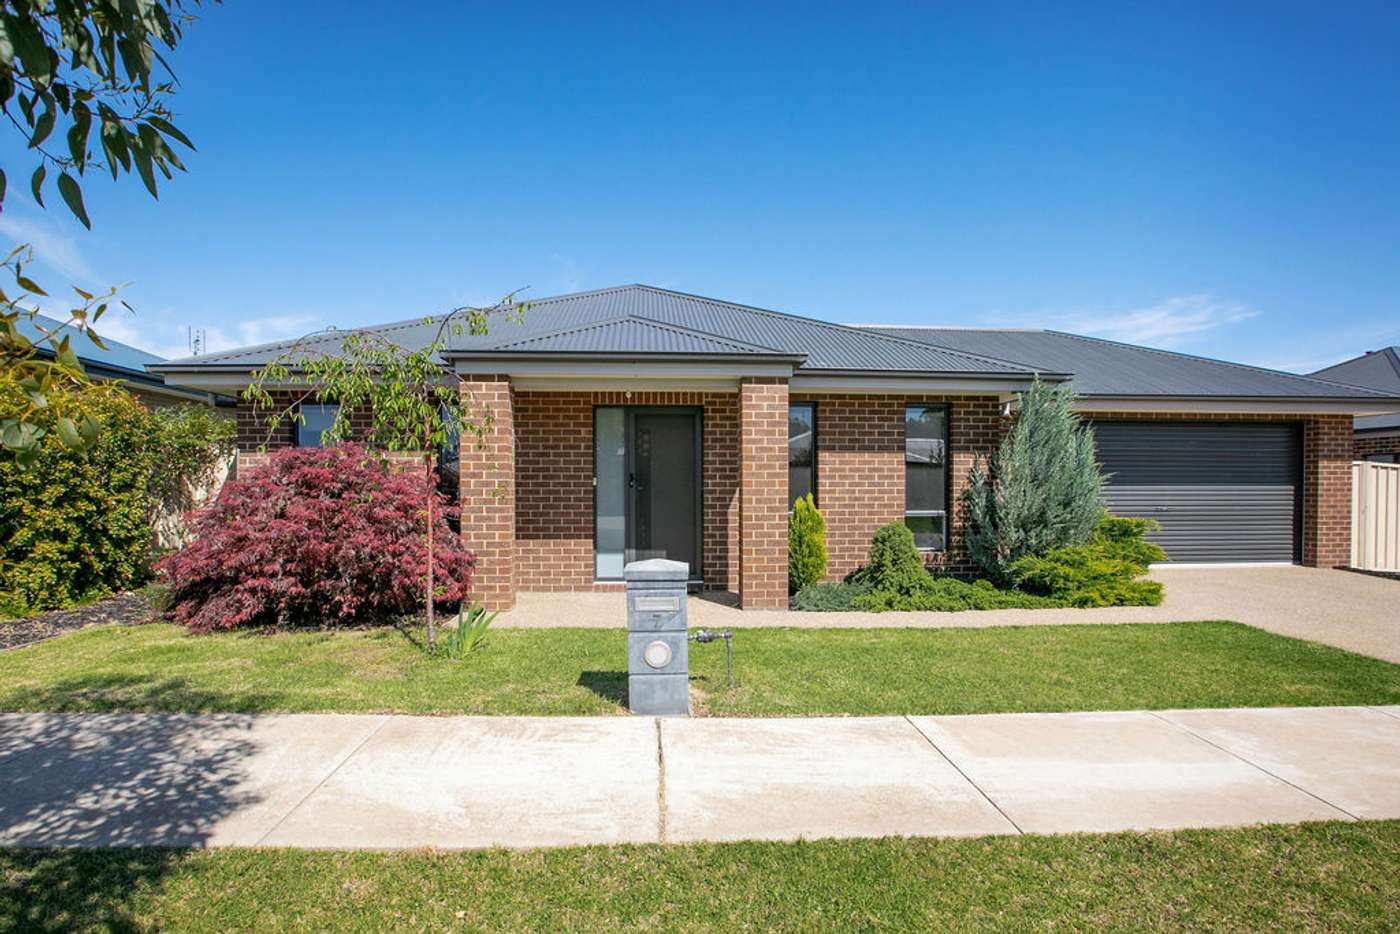 Main view of Homely house listing, 7 Derrick Street, Wodonga VIC 3690